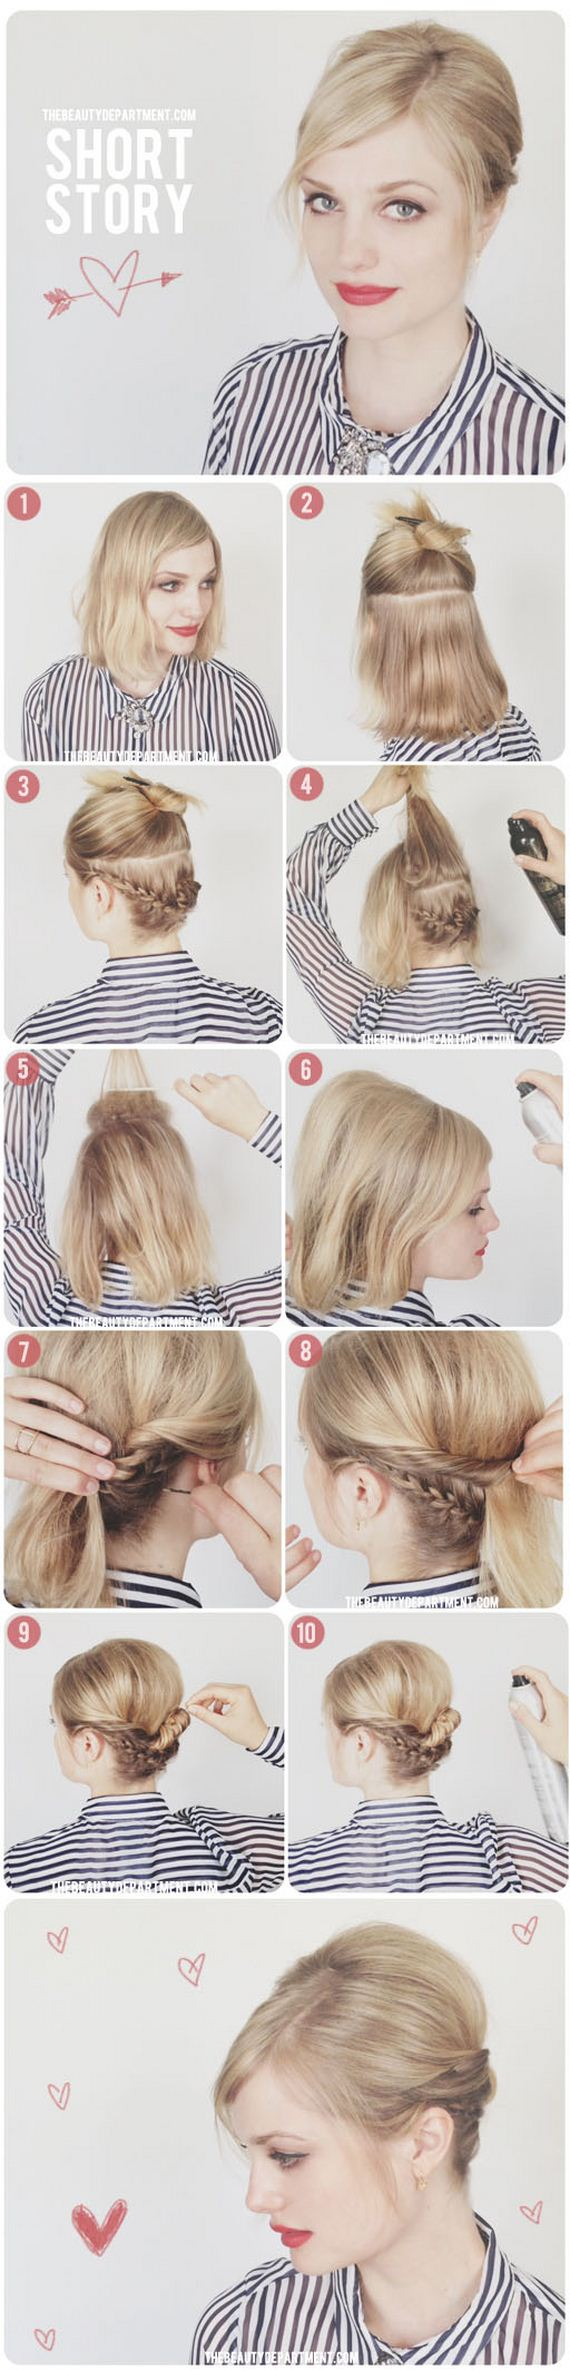 02-Short-Hairstyles